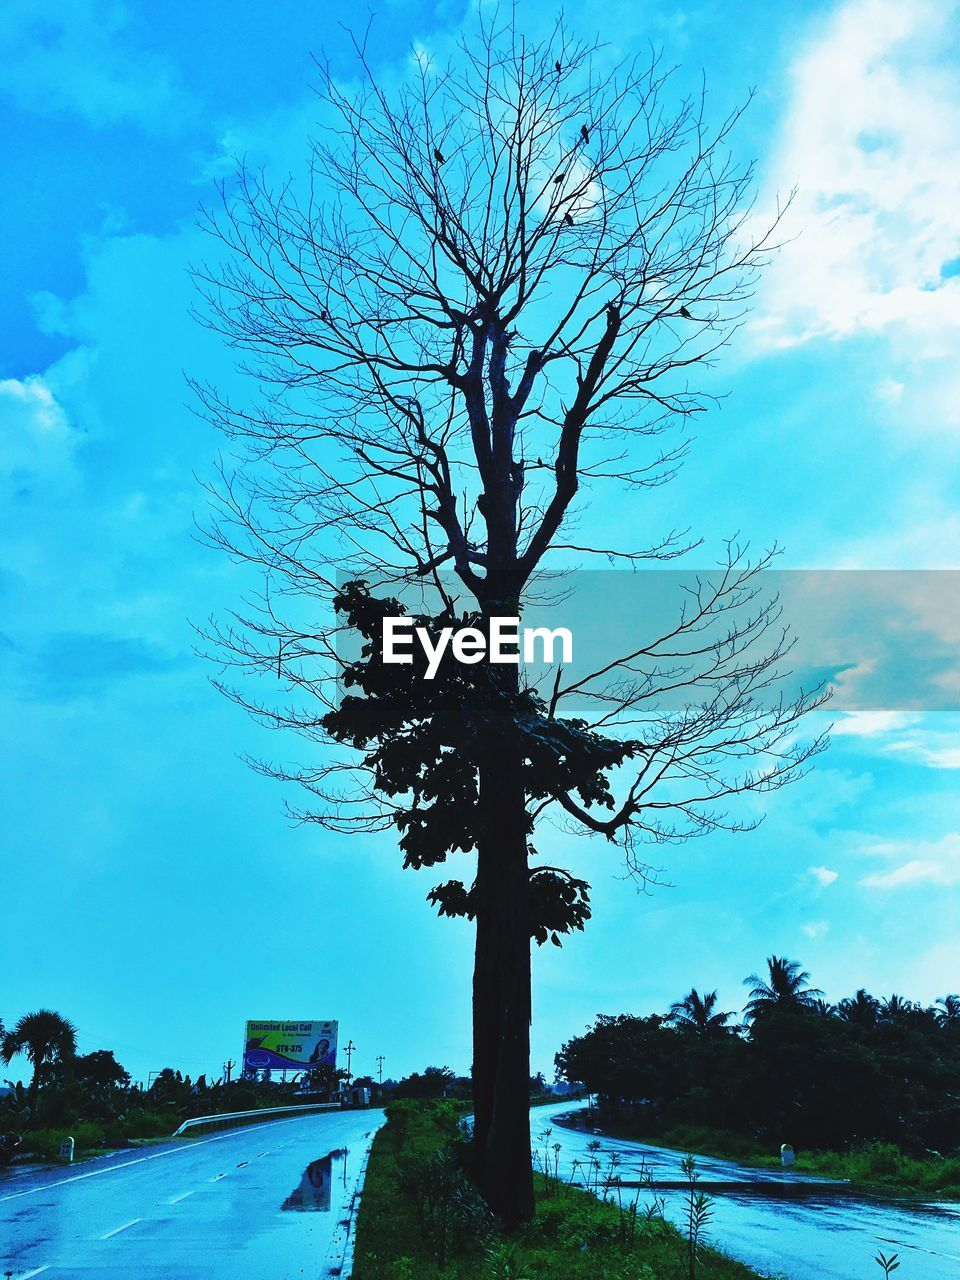 tree, sky, bare tree, car, outdoors, blue, branch, nature, no people, day